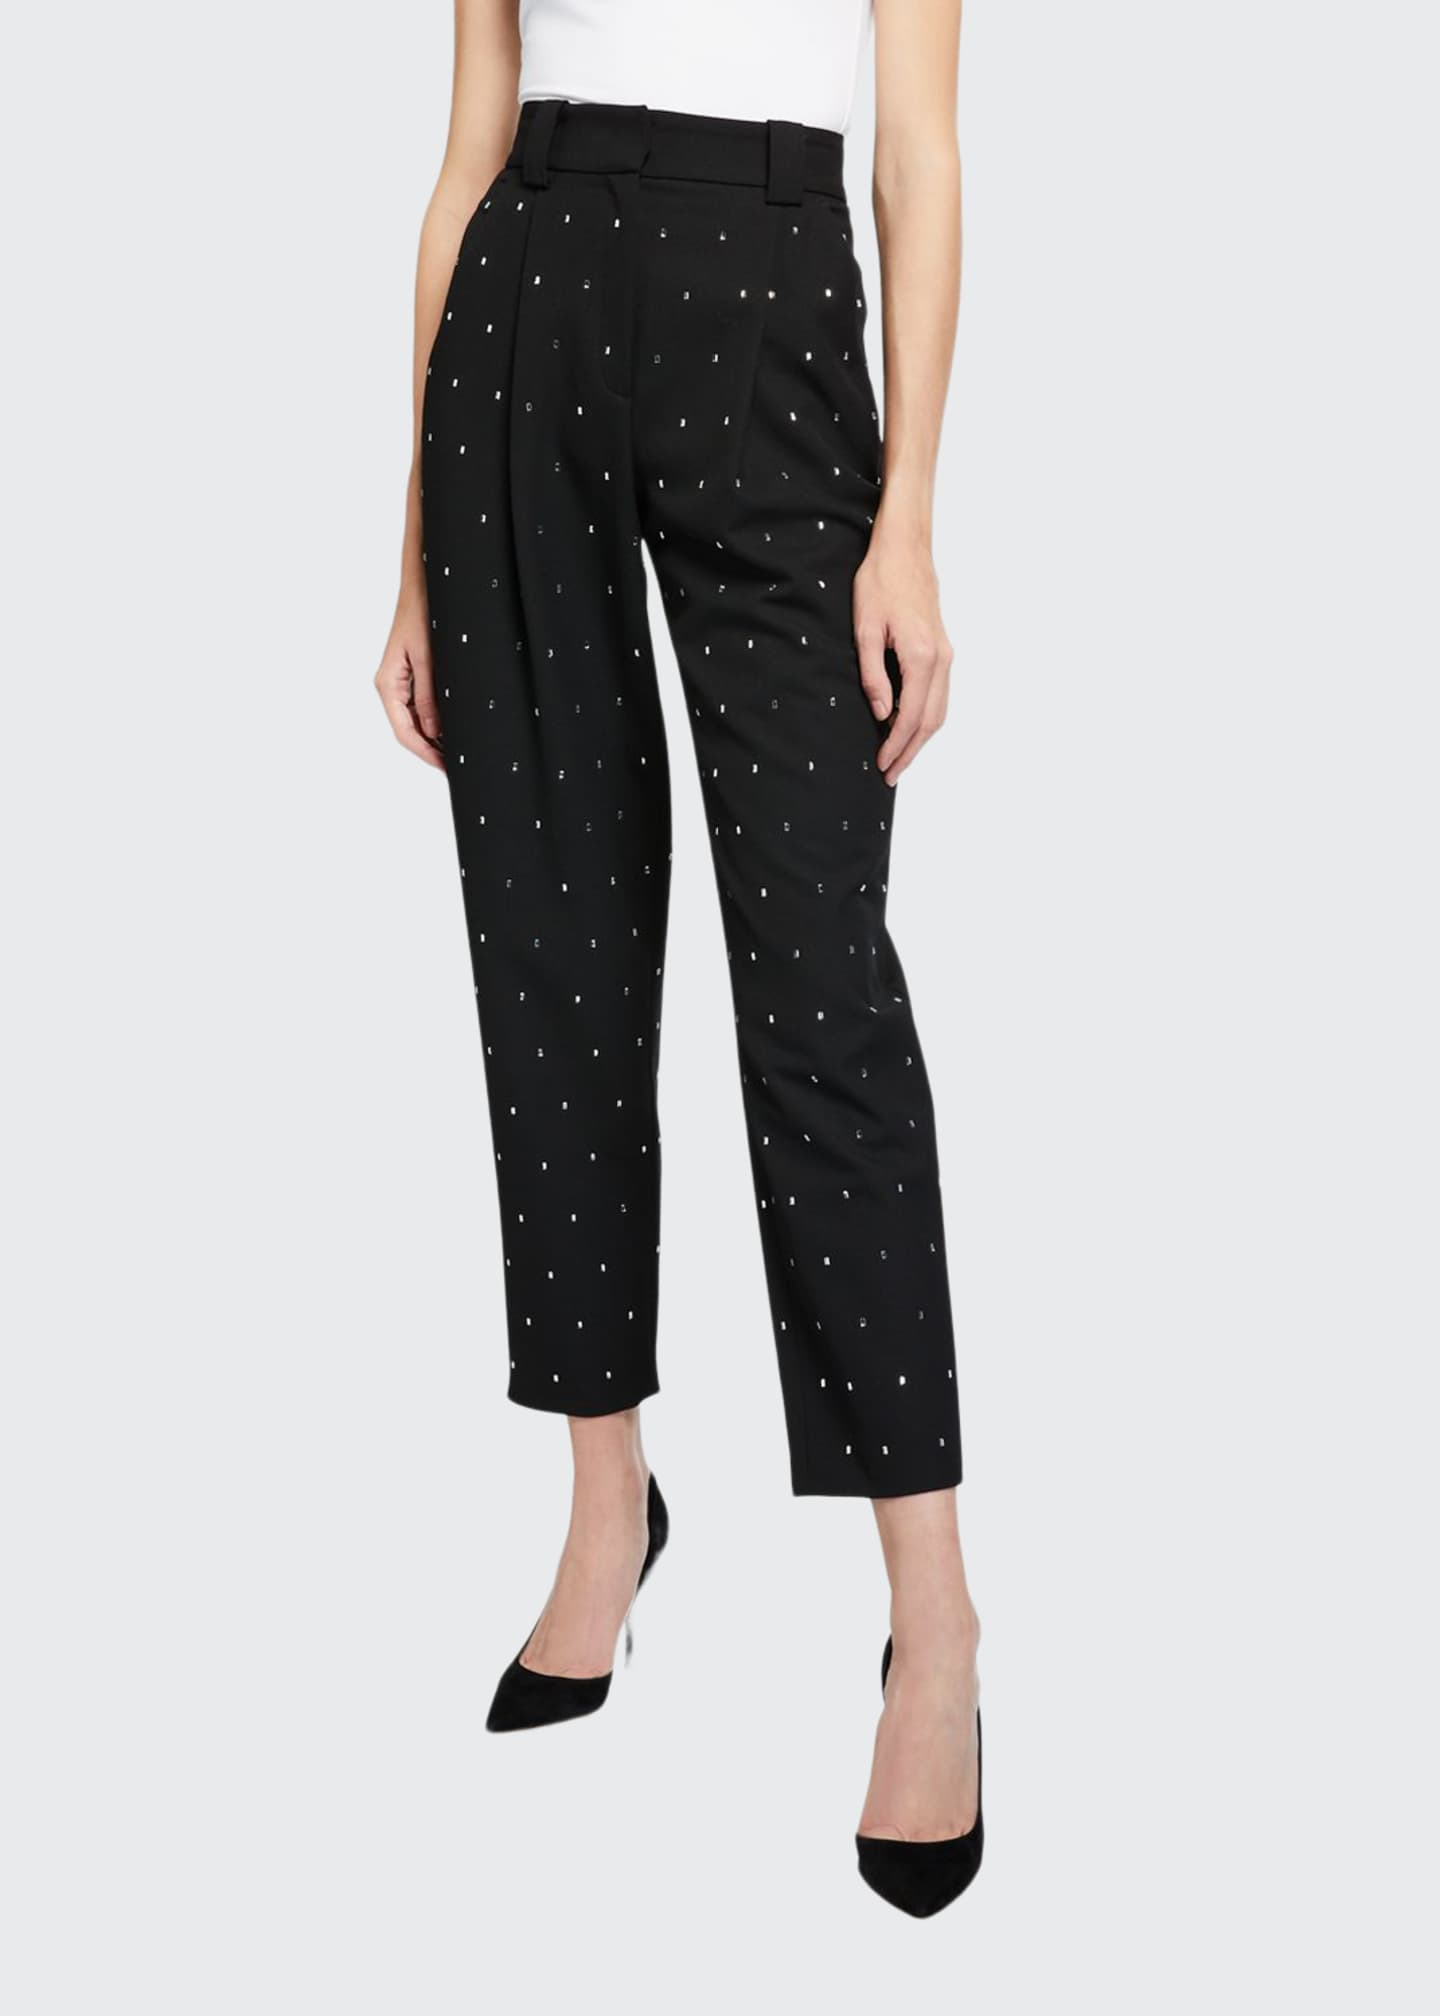 A.L.C. Colin Crystal-Embellished High-Rise Ankle Pants